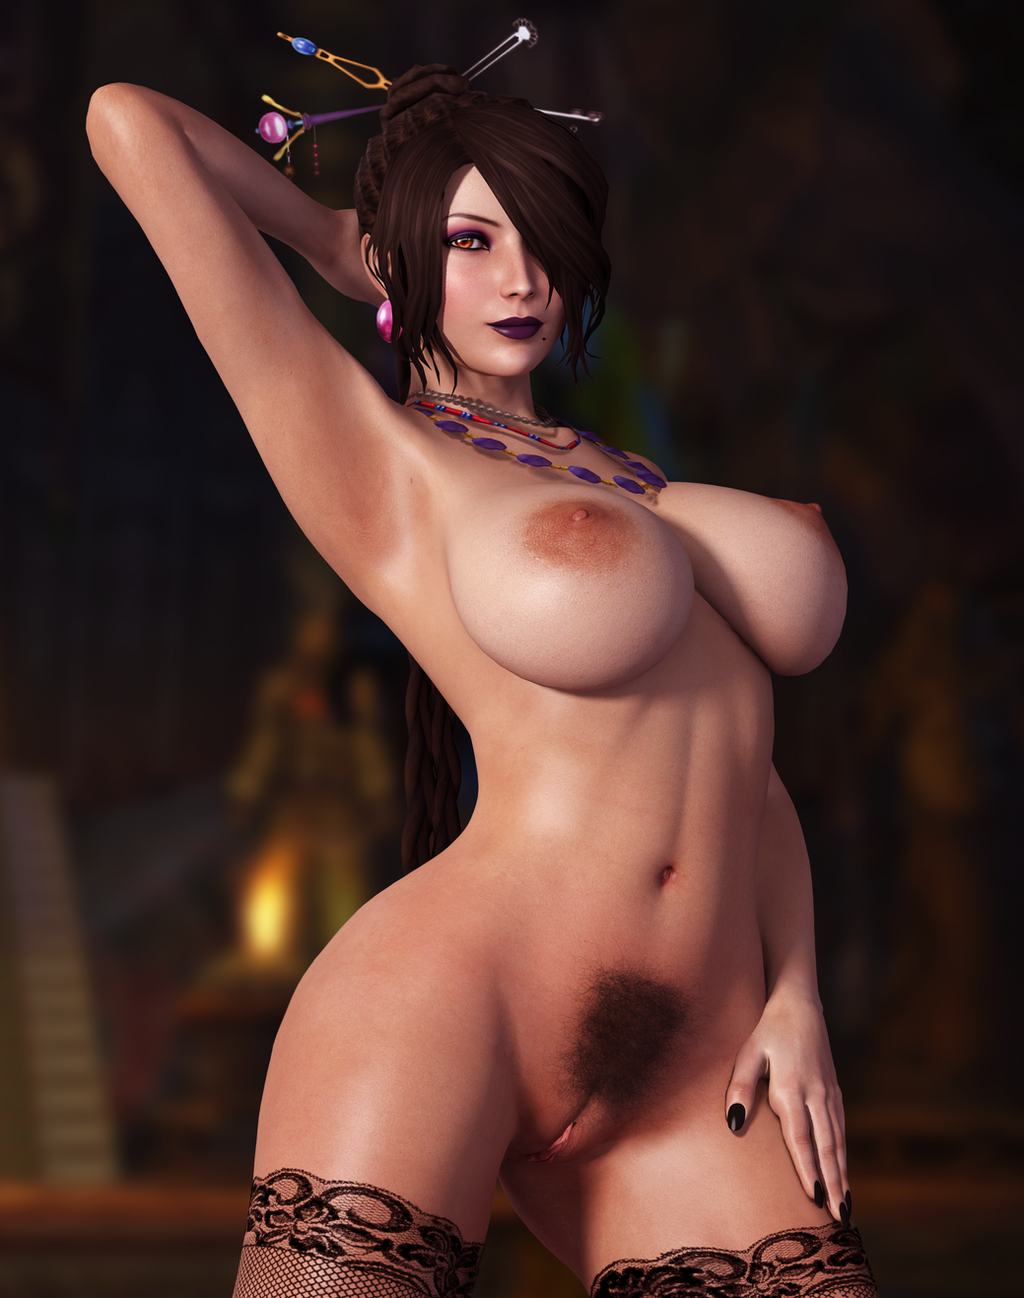 Lulu Final Fantasy X Naked Porn Videos Pornhubcom